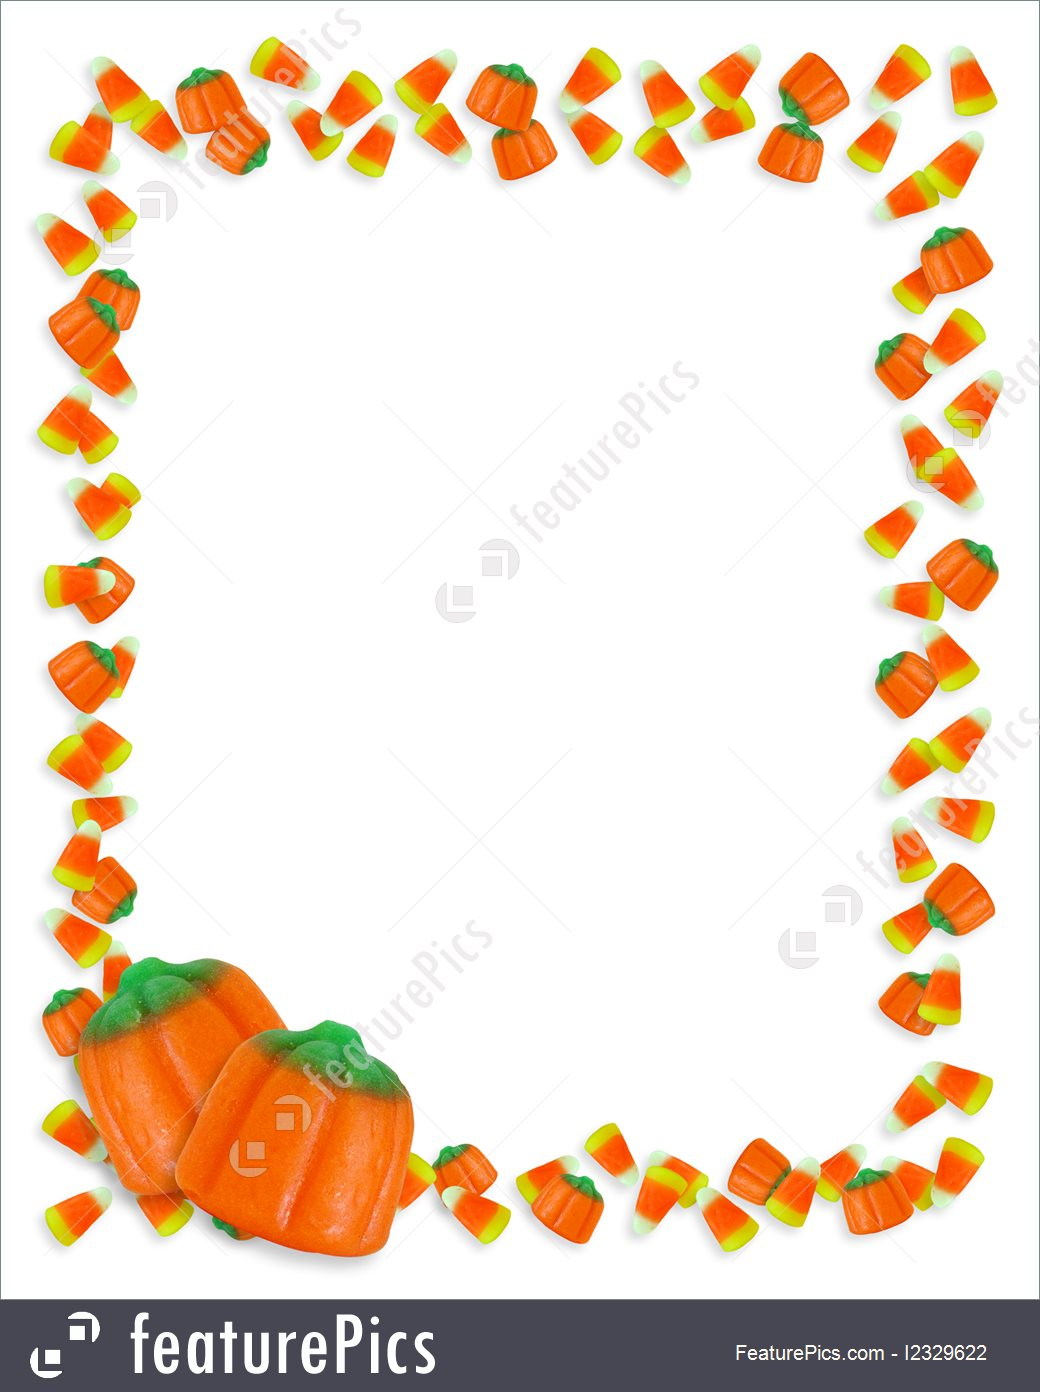 Templates: Image and illustration composition of candy corn for Halloween  Card, invitation, border